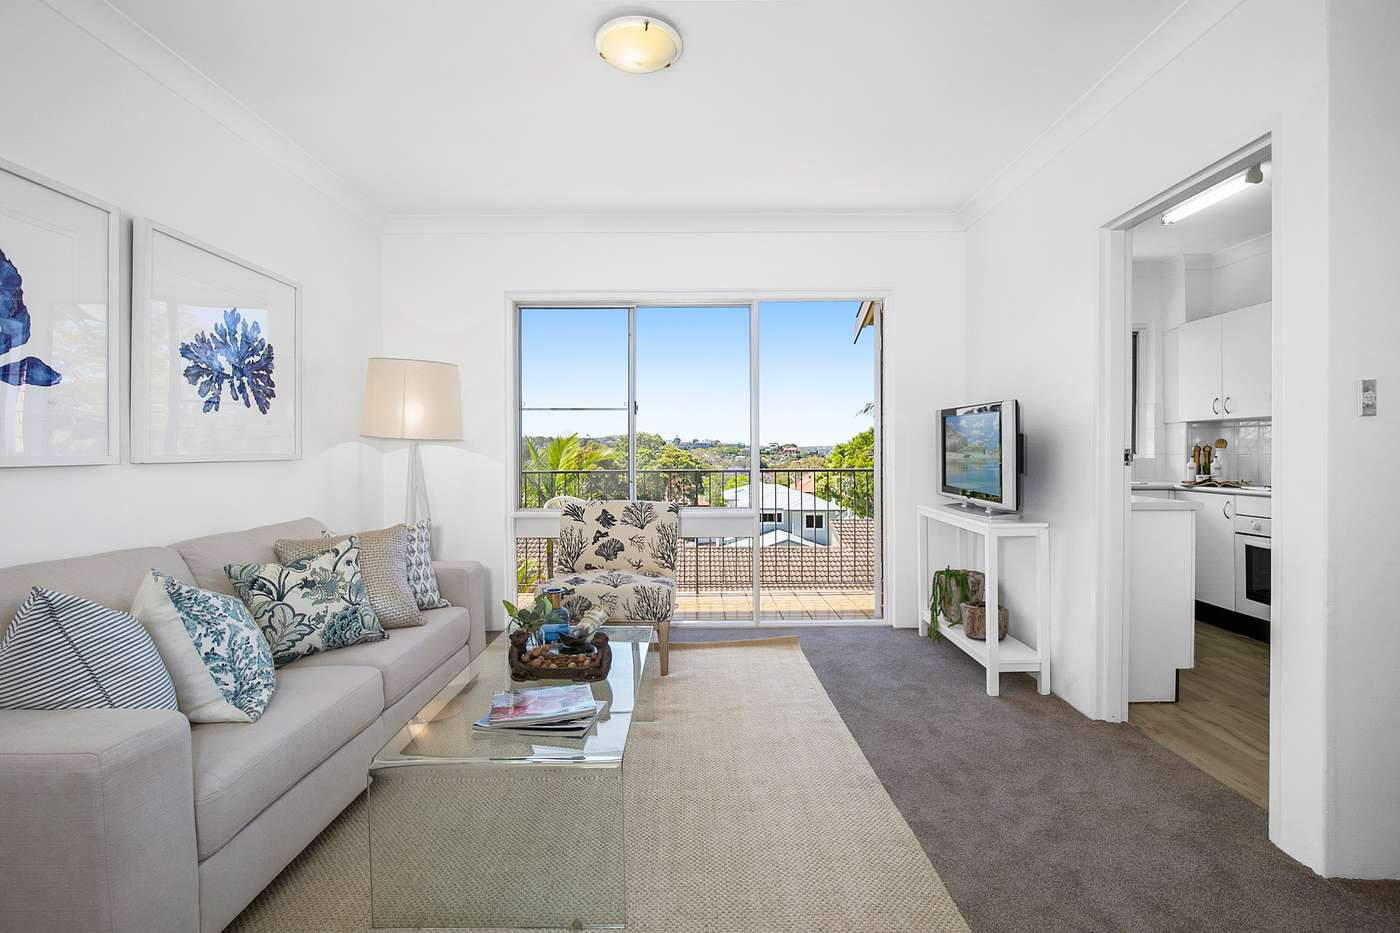 Main view of Homely apartment listing, 11/14-18 Angle Street, Balgowlah, NSW 2093